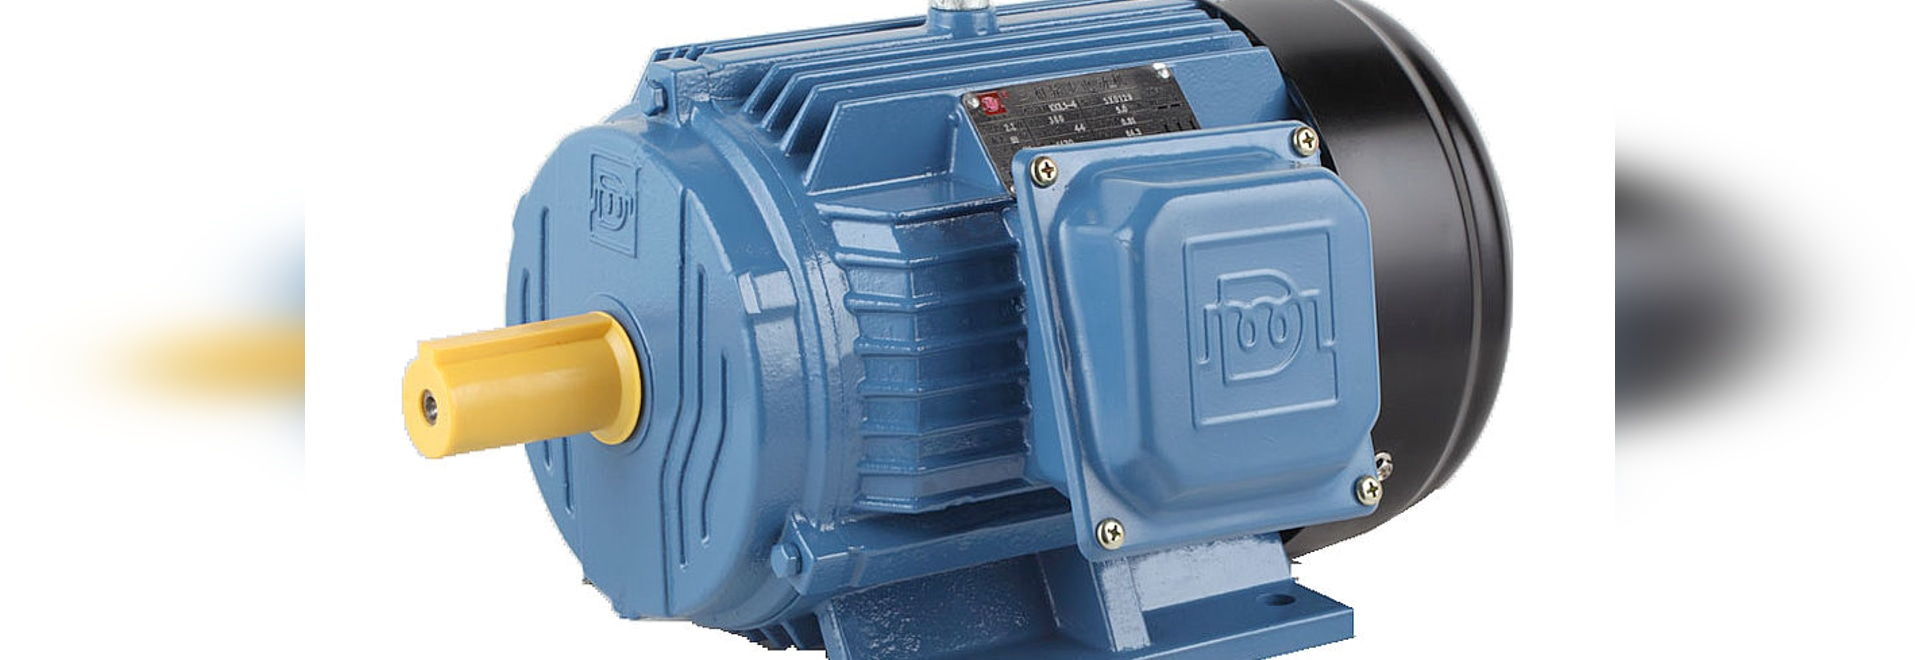 ac motor is suitable for air compressor with motor